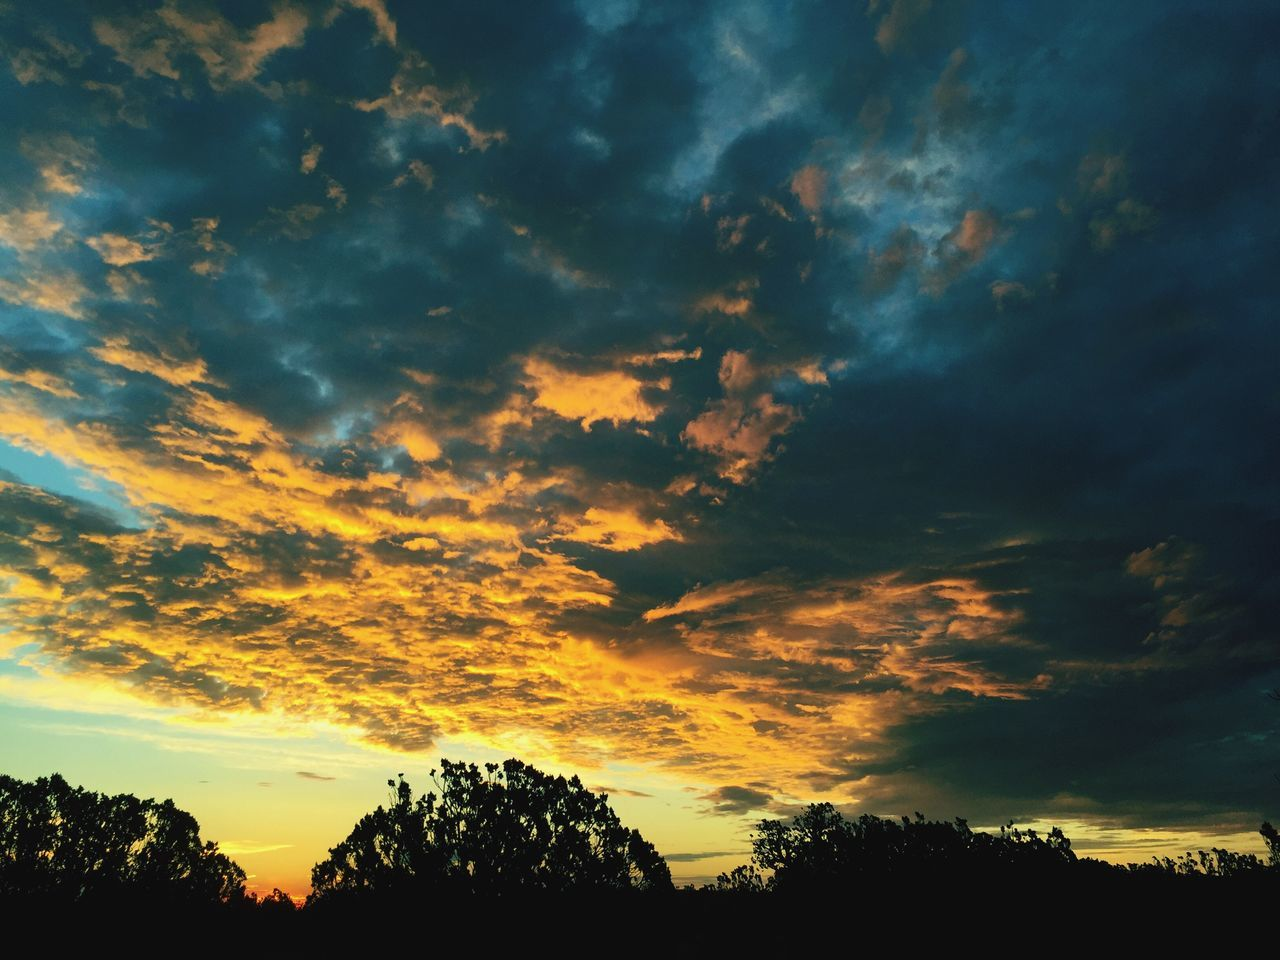 beauty in nature, sunset, scenics, tree, cloud - sky, tranquil scene, sky, tranquility, nature, silhouette, dramatic sky, idyllic, no people, low angle view, outdoors, storm cloud, day